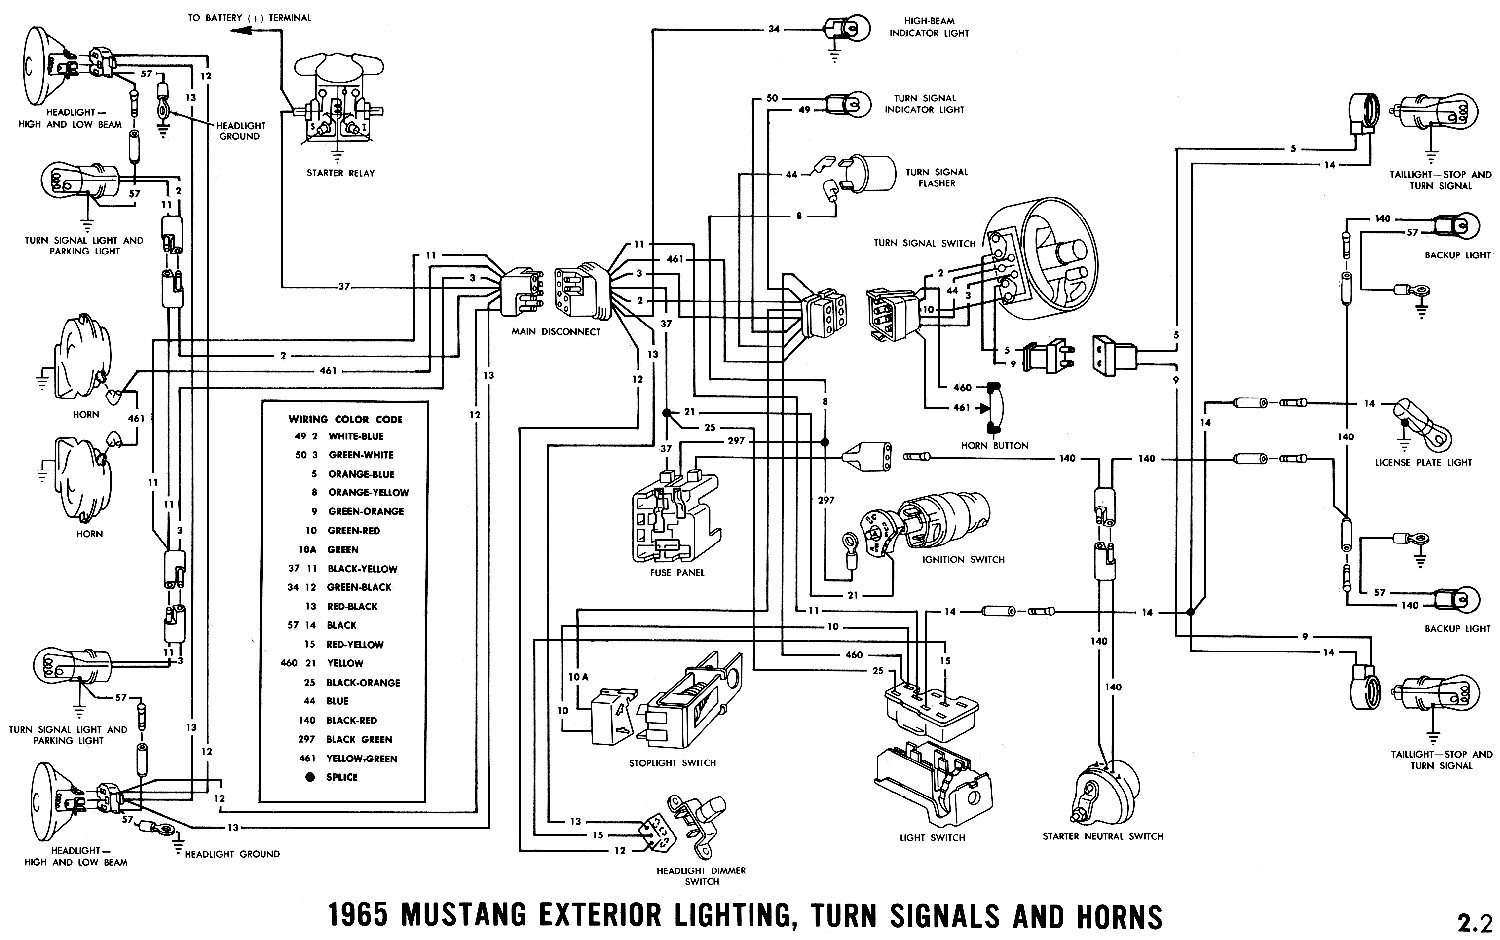 1965 Mustang Wiring Diagrams Average Joe Restoration Basic Ignition Switch Diagram View With Headlamps